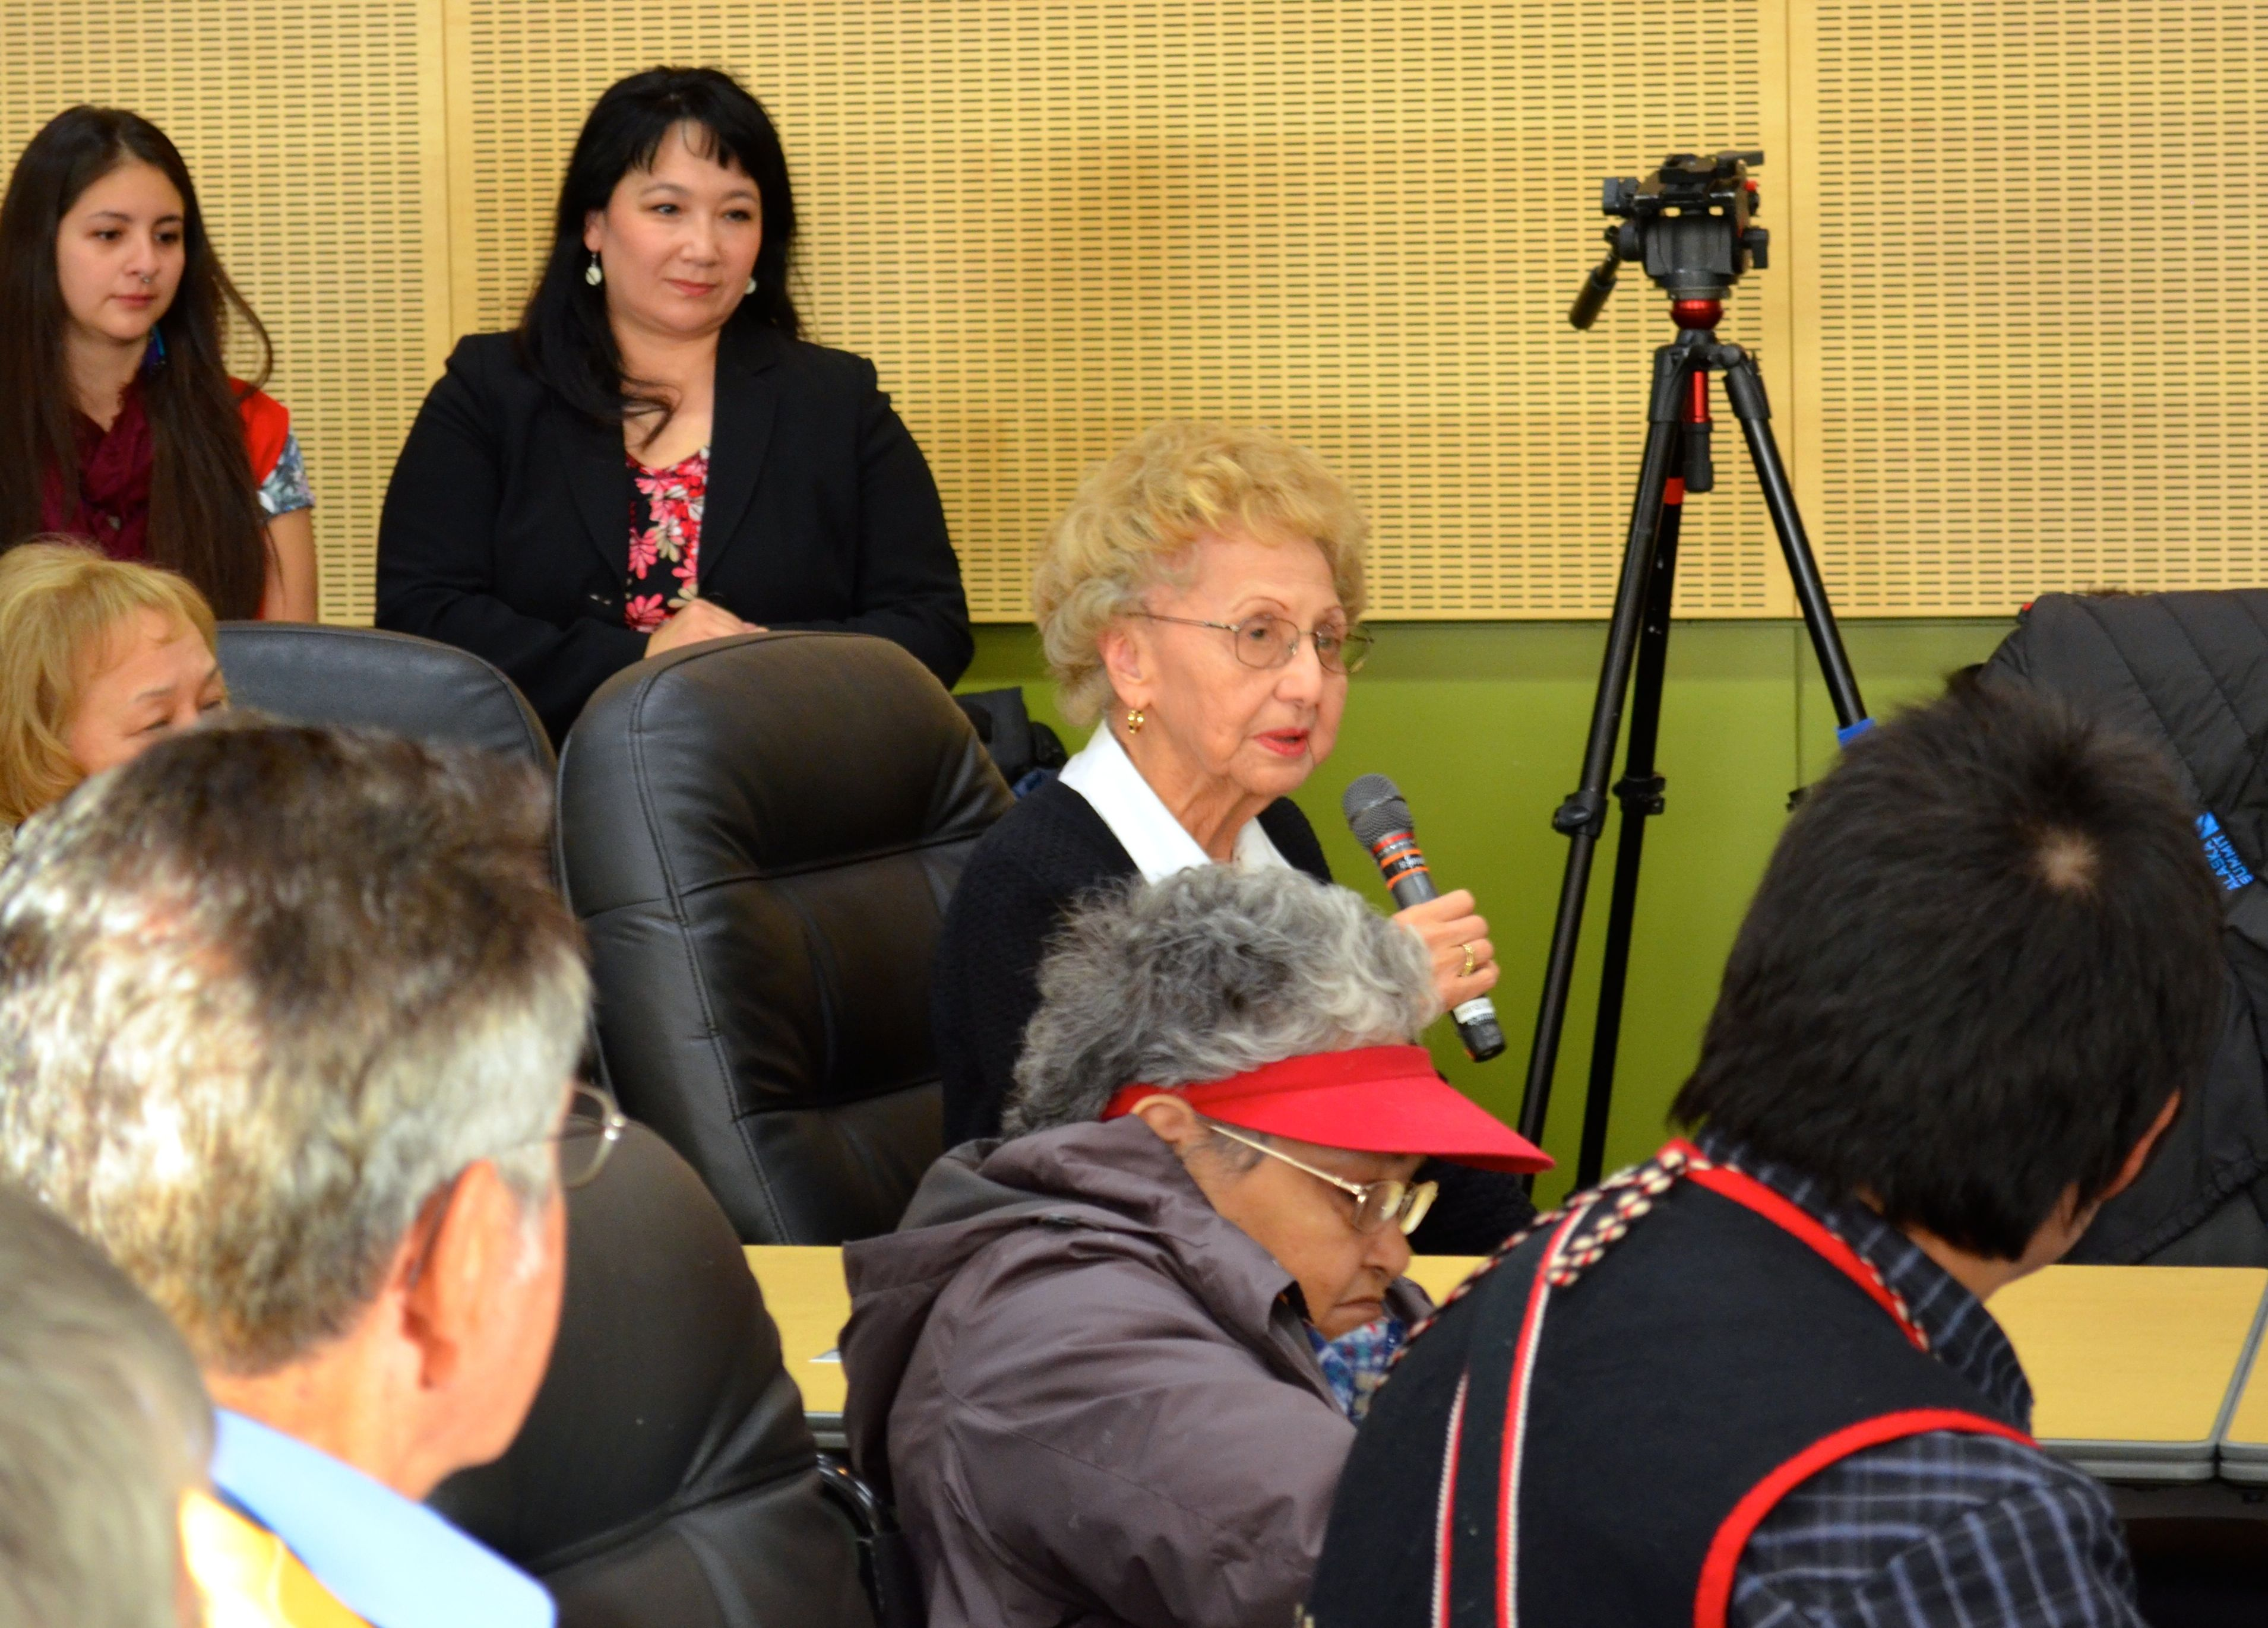 Tlingit elder Kaséix̱ Selina Everson speaks after Gov. Sean Parnell signed a bill making Alaska's Native languages official languages of the state of Alaska. Former Tlingit Haida Central Council President Ed Thomas and Lance Twitchell look on in the foreground. (Photo by Jennifer Canfield/KTOO)